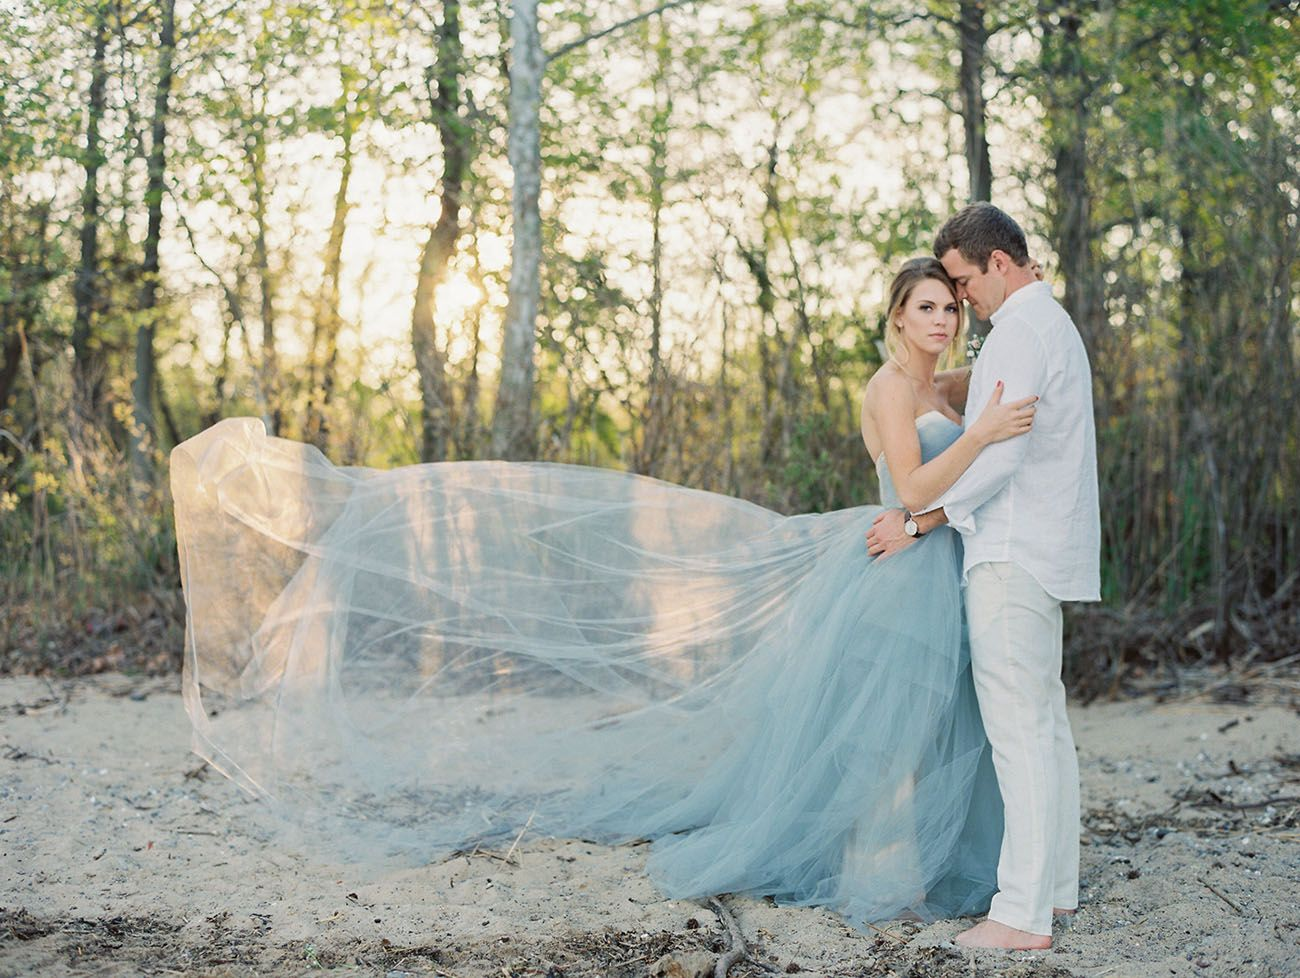 Gown: Carol Hannah Oceane | Photography: CJK Visuals | Event Design ...